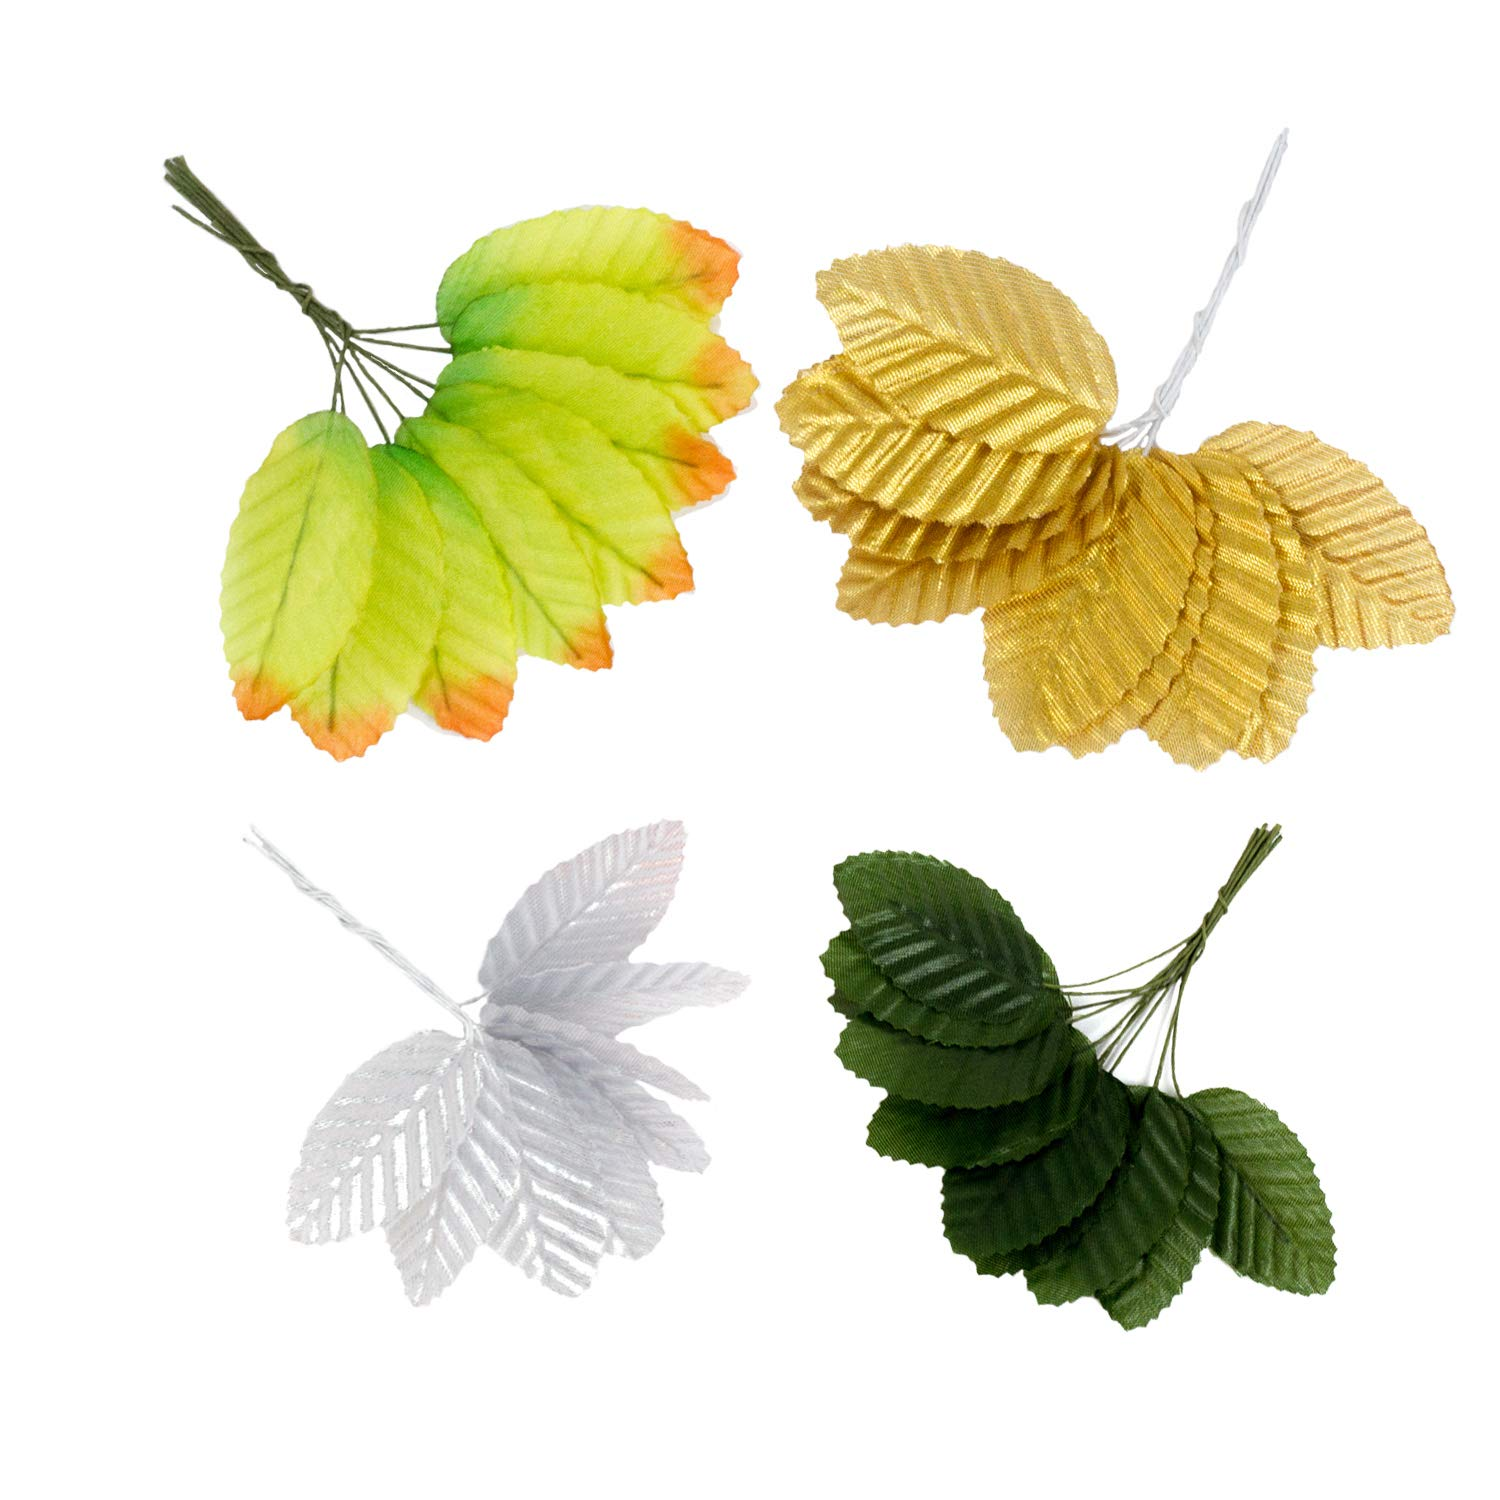 D-buy 200 Pcs Silk Leaf Mix Color Artificial Leaves, for Wedding Decor, DIY Home Decorative, Christmas Party Decoration, DIY Wreath Gift Scrapbooking, Craft Fake Flower Supplies (Mix Color)